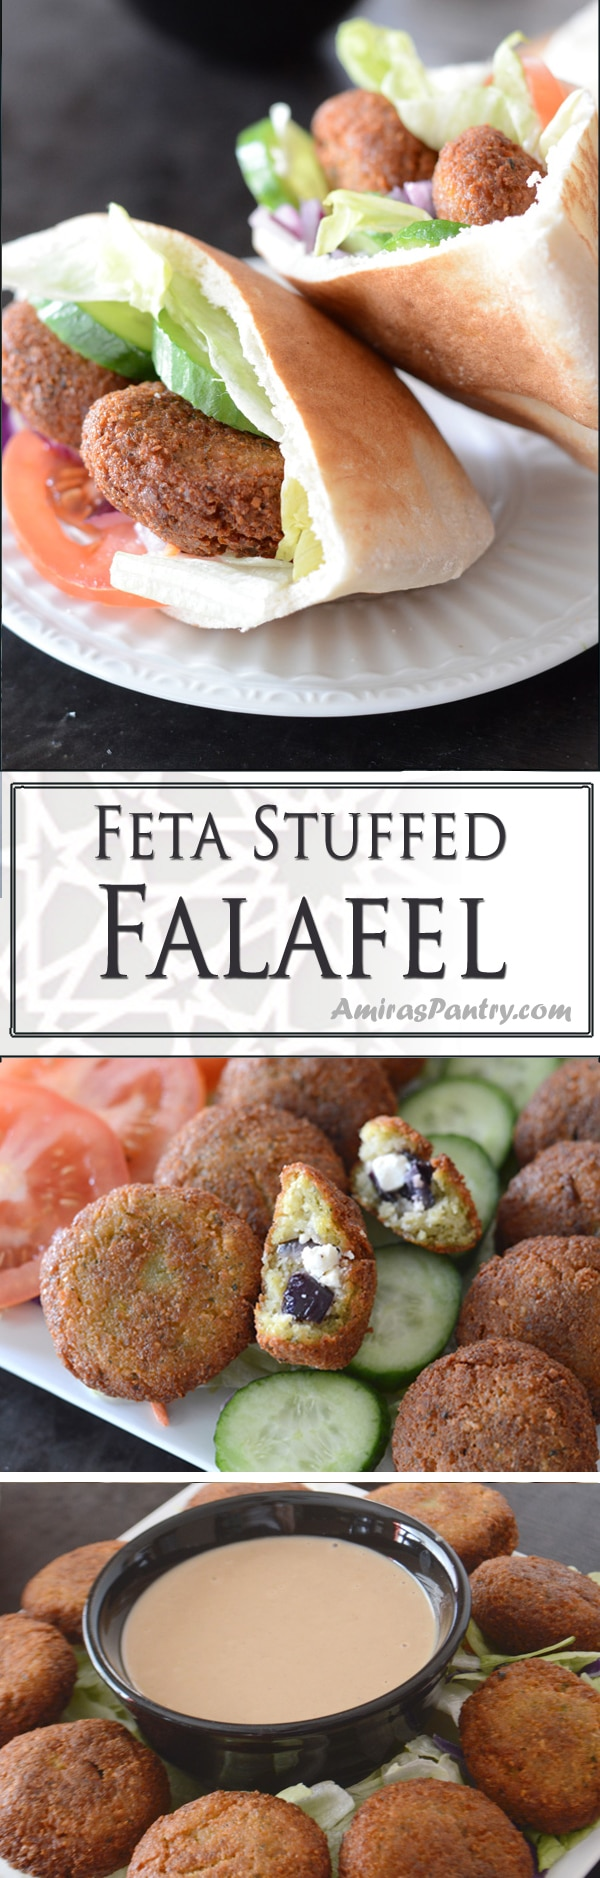 Enjoy crunchy homemade Middle Eastern falafel. Crispy, flavorful and with a twist. Take falafel to the next level with this delicious stuffing